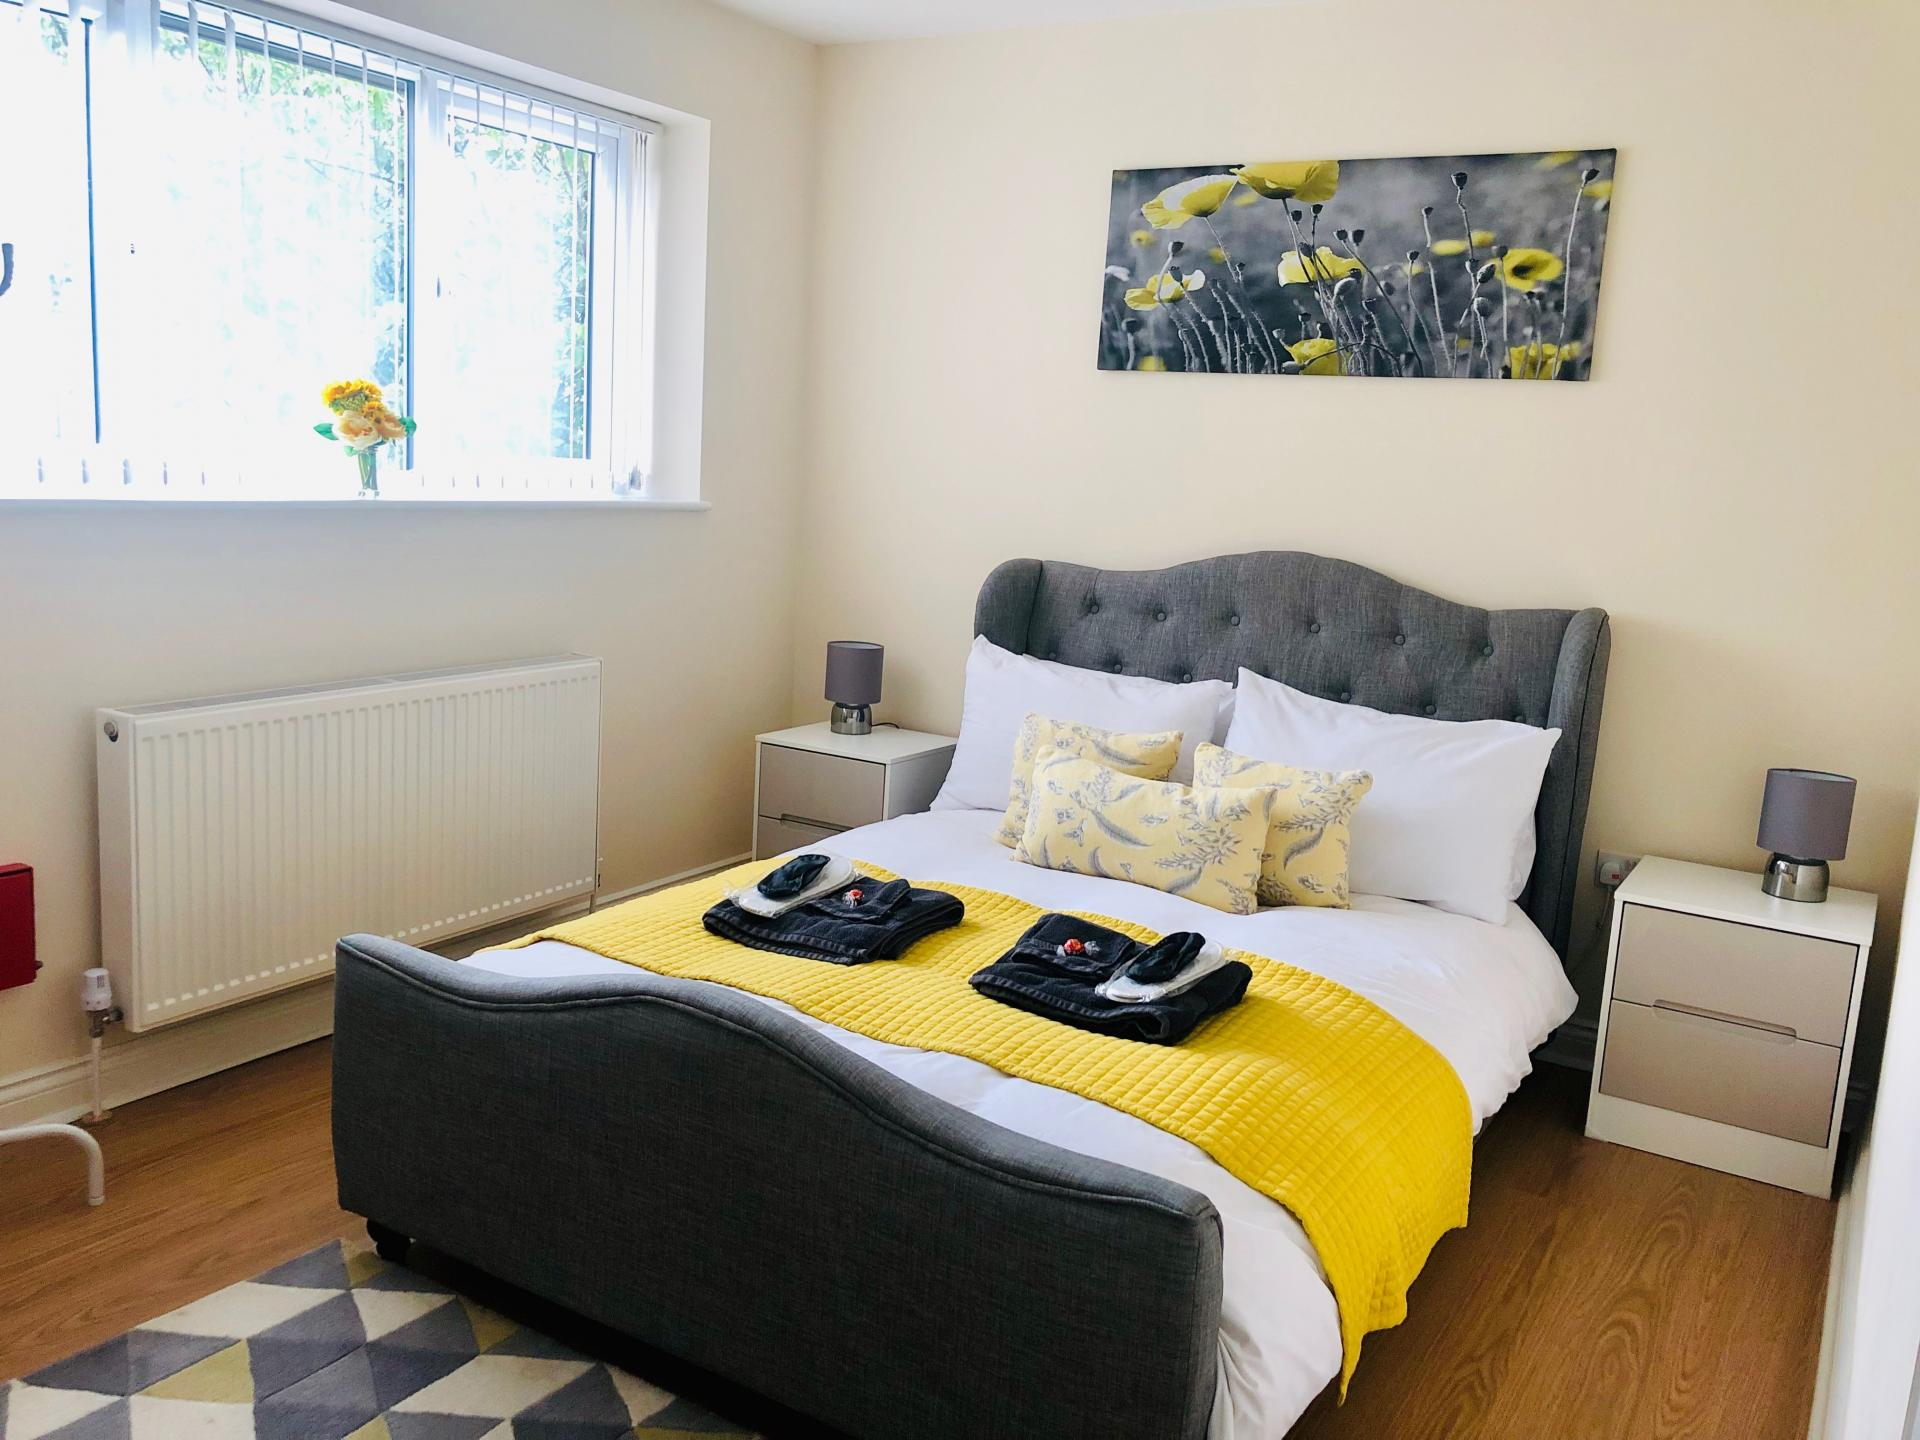 Bedroom at The Vinery Apartment - Citybase Apartments